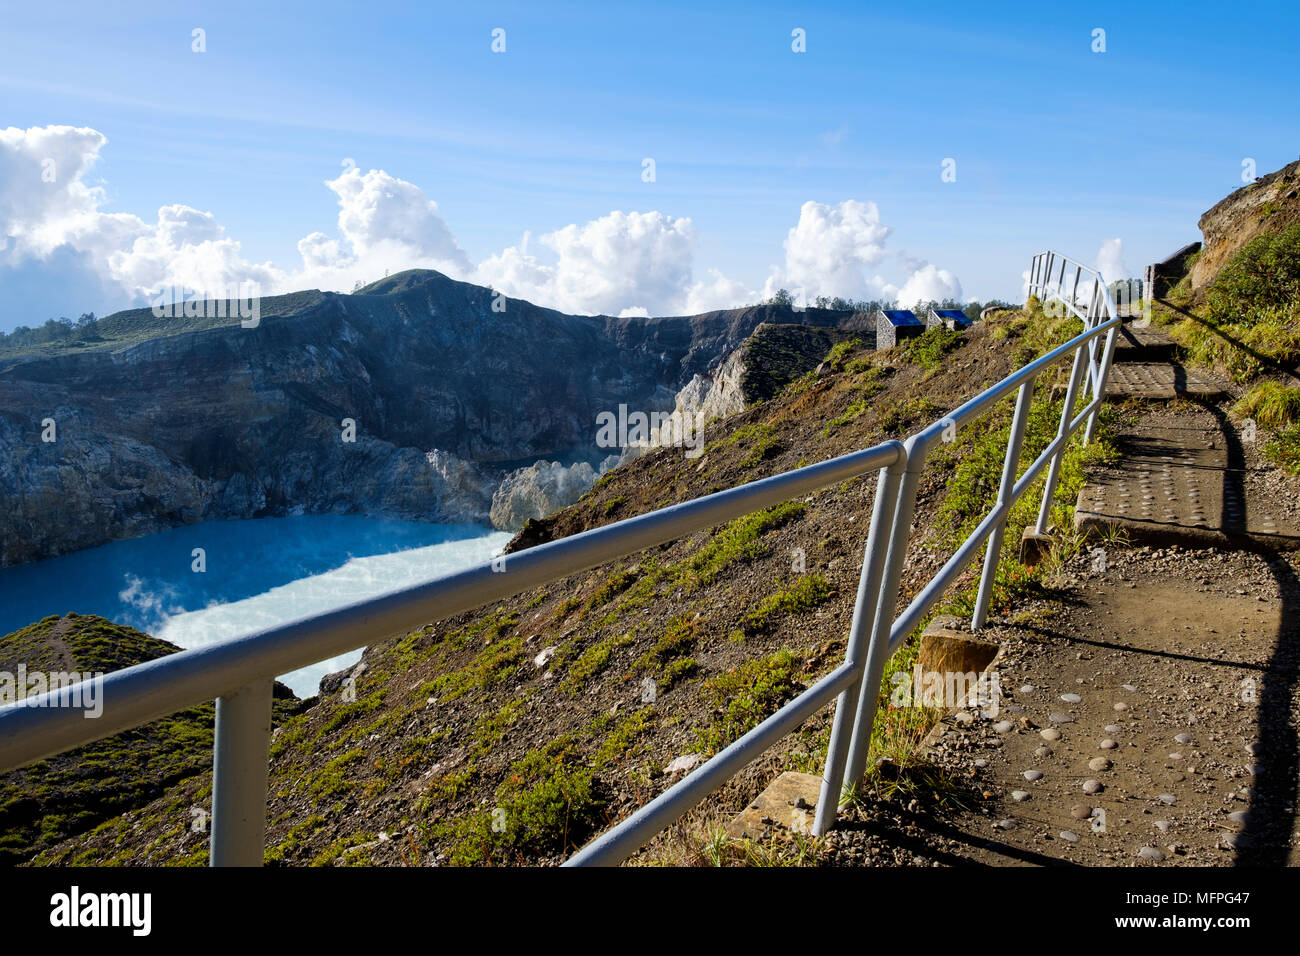 Path from upper viewpoint to the two eastern crater lakes at Mount Kelimutu, Ende Regency, Flores Island, Indonesia. - Stock Image